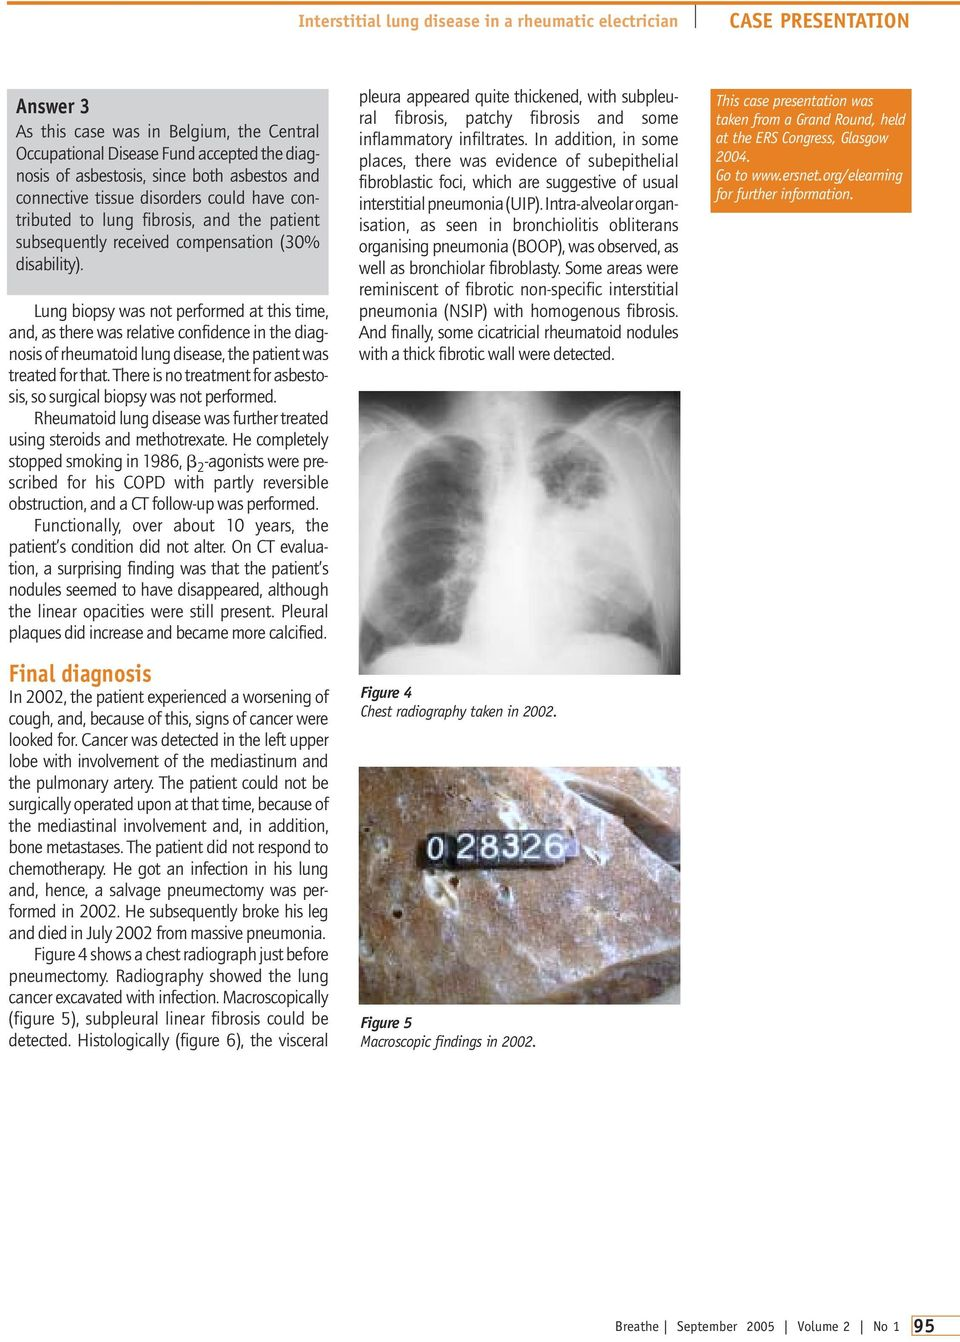 Lung biopsy was not performed at this time, and, as there was relative confidence in the diagnosis of rheumatoid lung disease, the patient was treated for that.